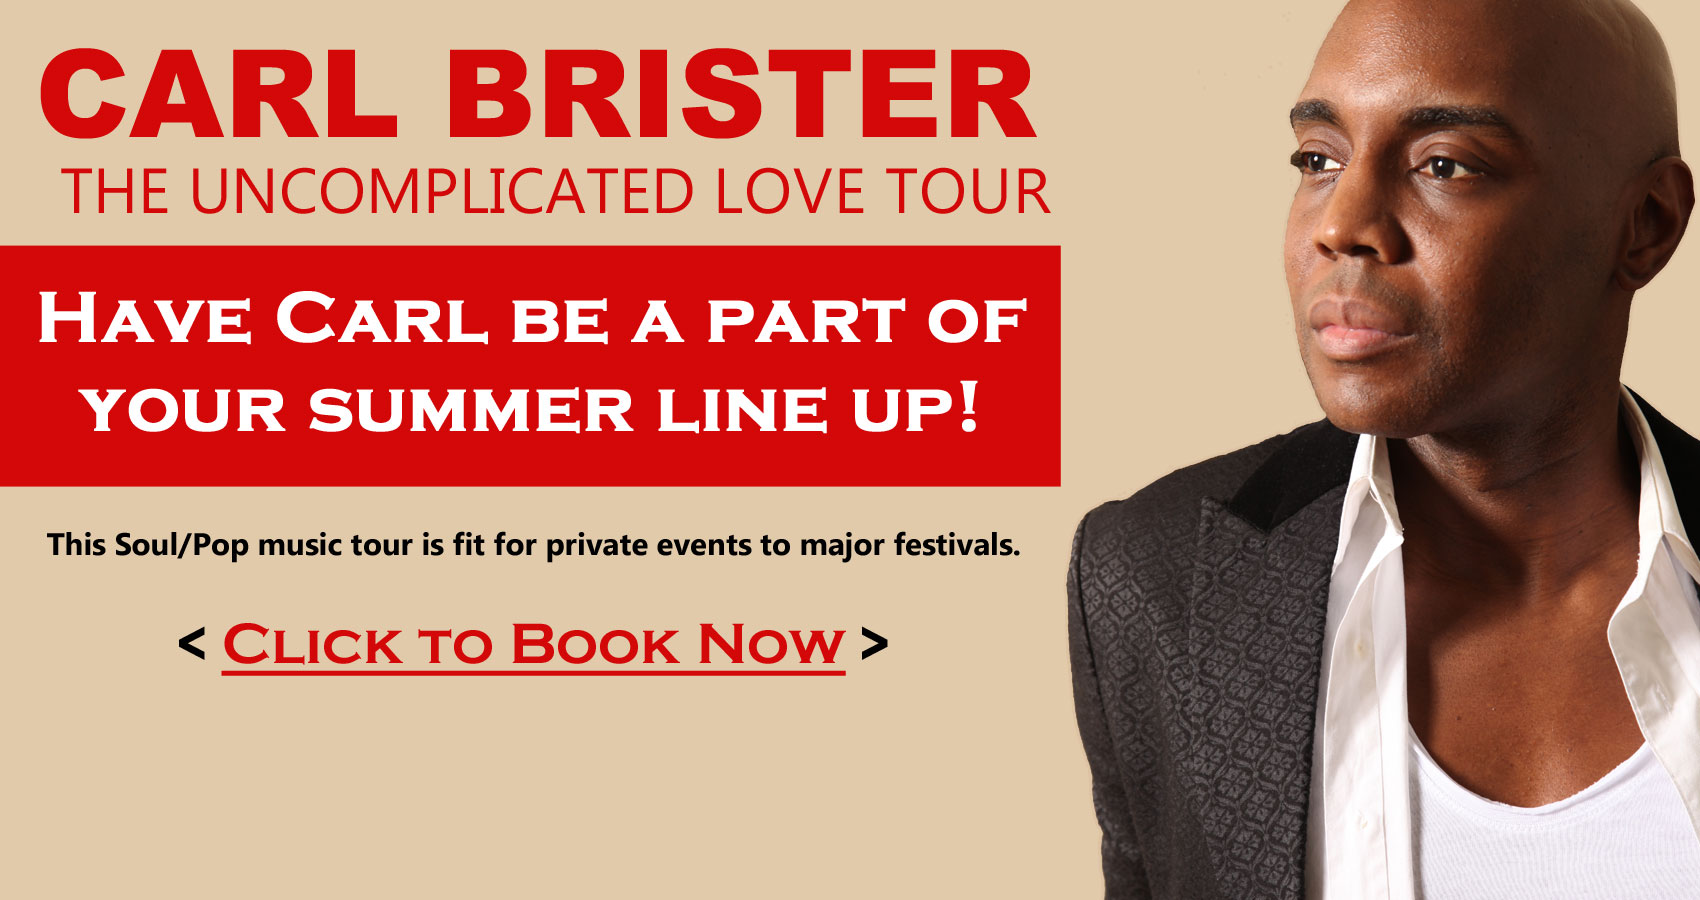 Carl Brister - THE UNCOMPLICATED LOVE Tour 2015. Booking Now!